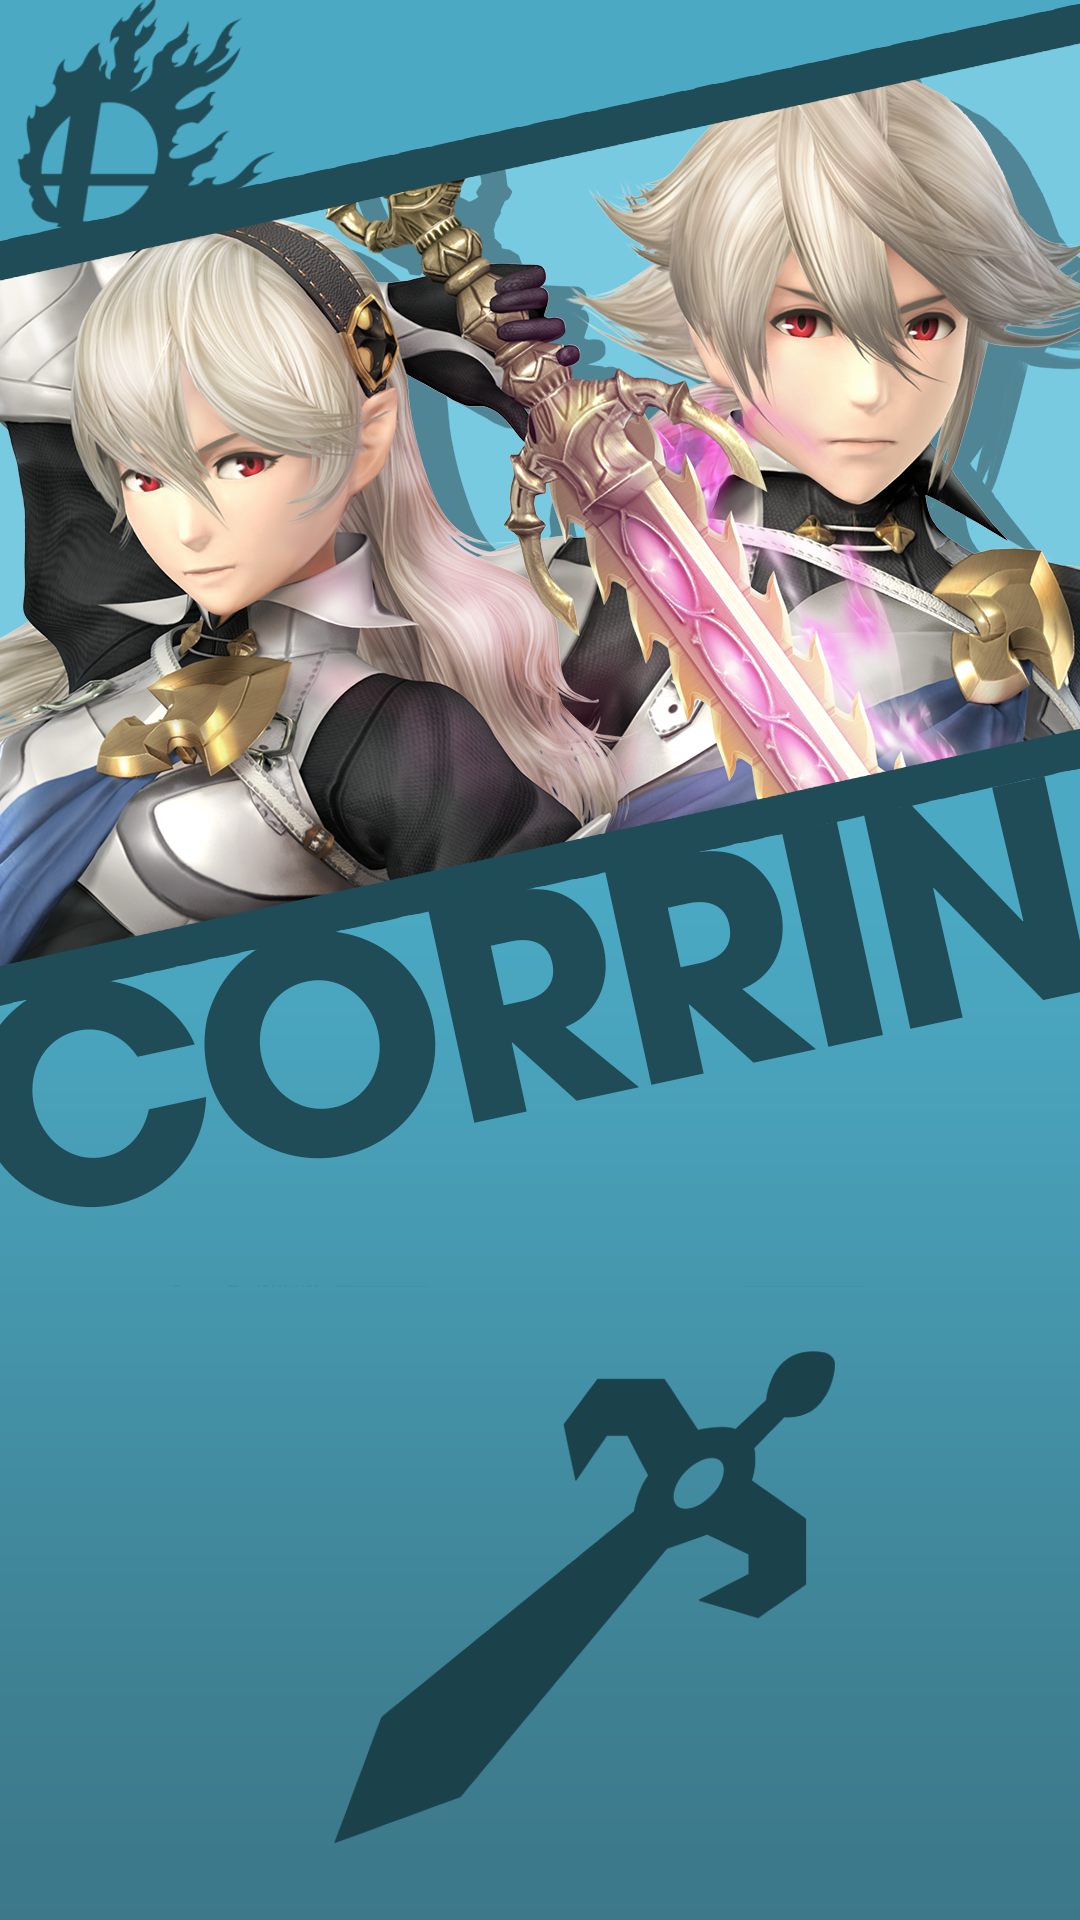 Corrin Male Female Smash Bros Phone Wallpaper By Mrthatkidalex24 On Deviantart Need to know your phone resolution? corrin male female smash bros phone